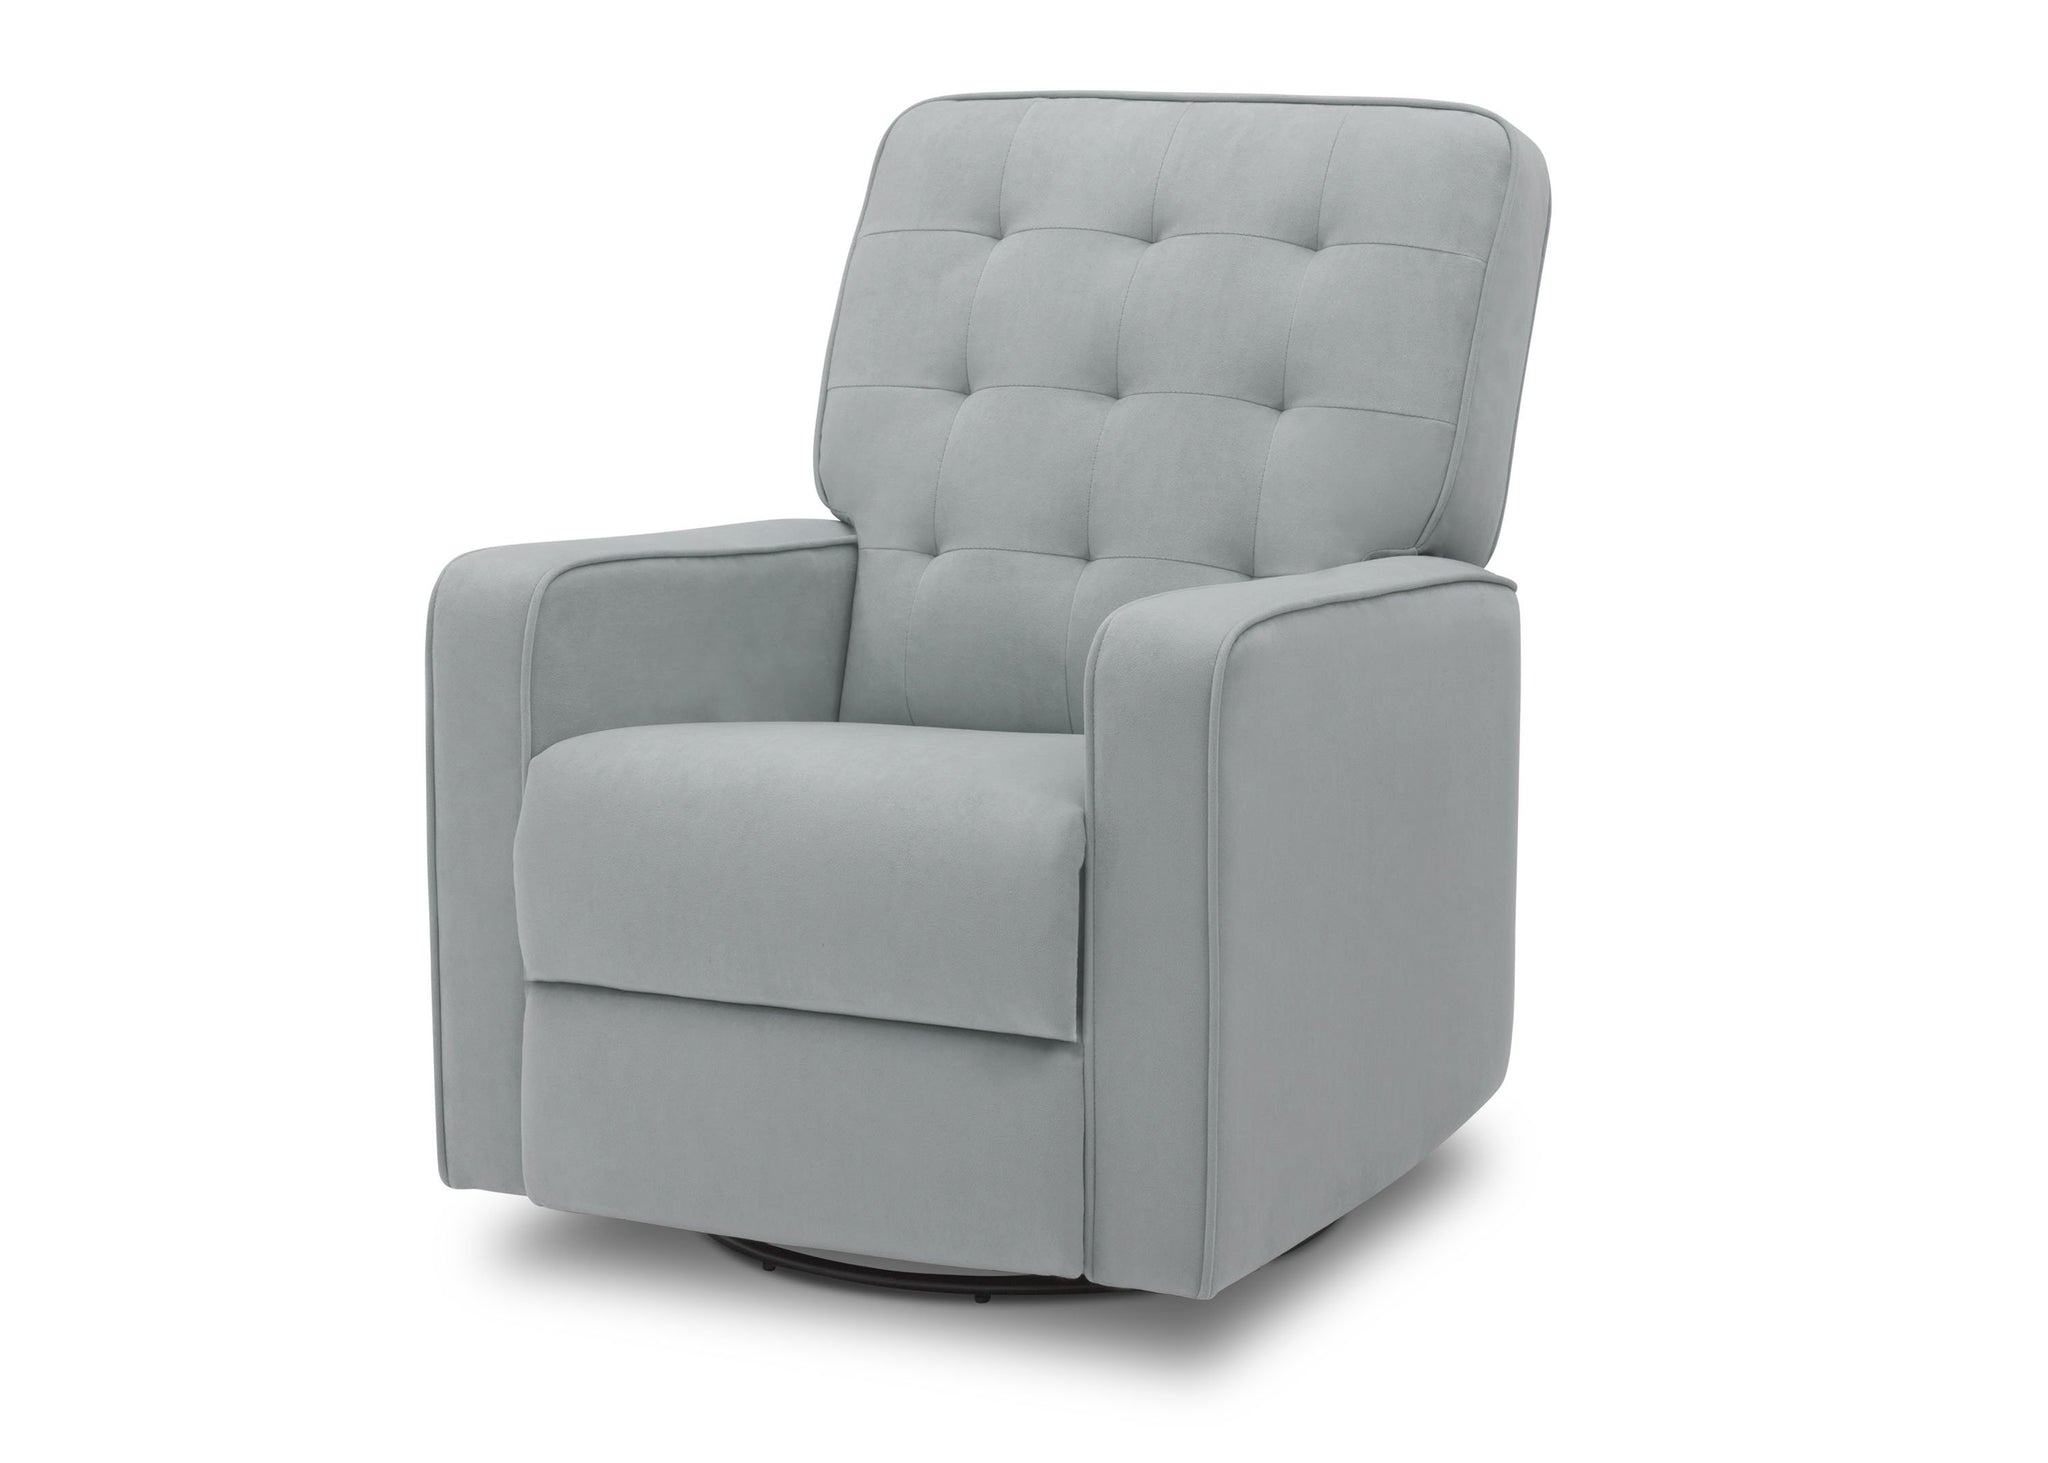 Delta Home Mist (934) Grant Glider Swivel Recliner, Left Silo View